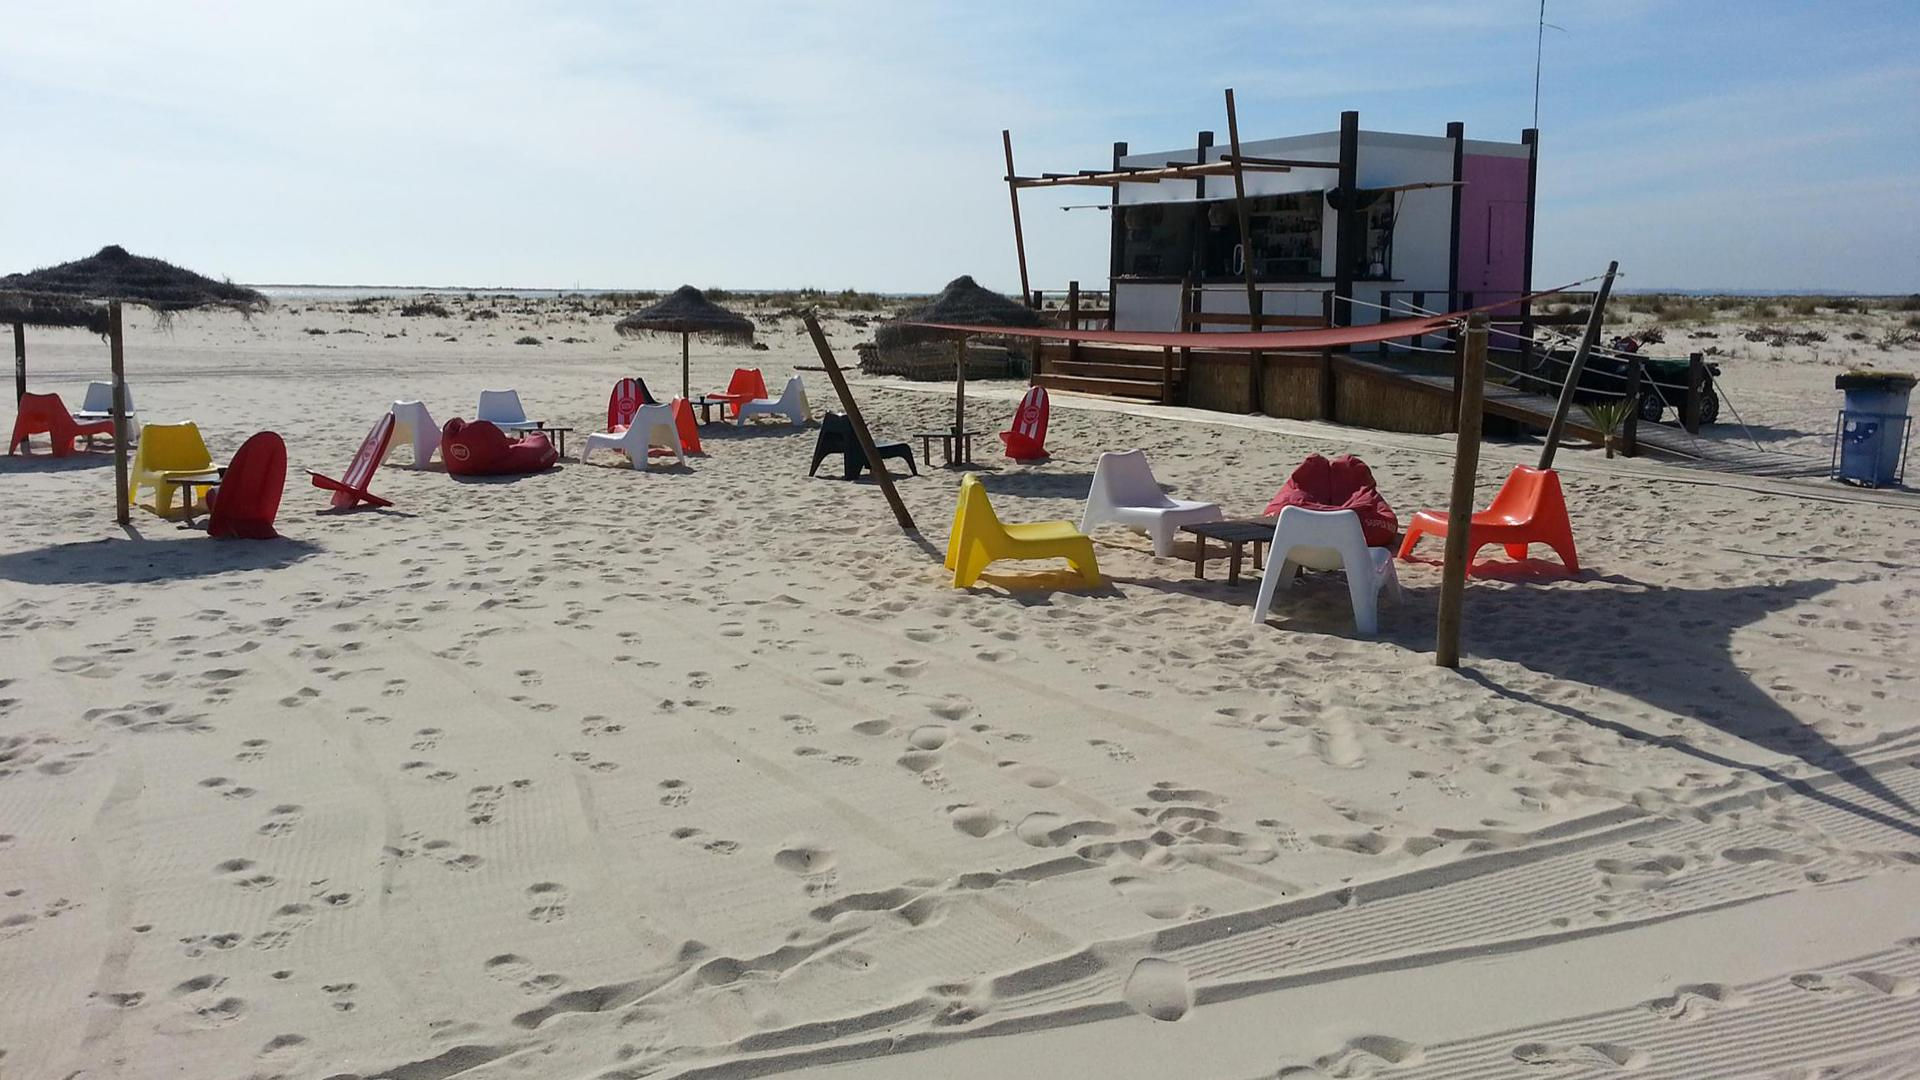 Camaleão in Armona island, Algarve: the best beach bar in Europe